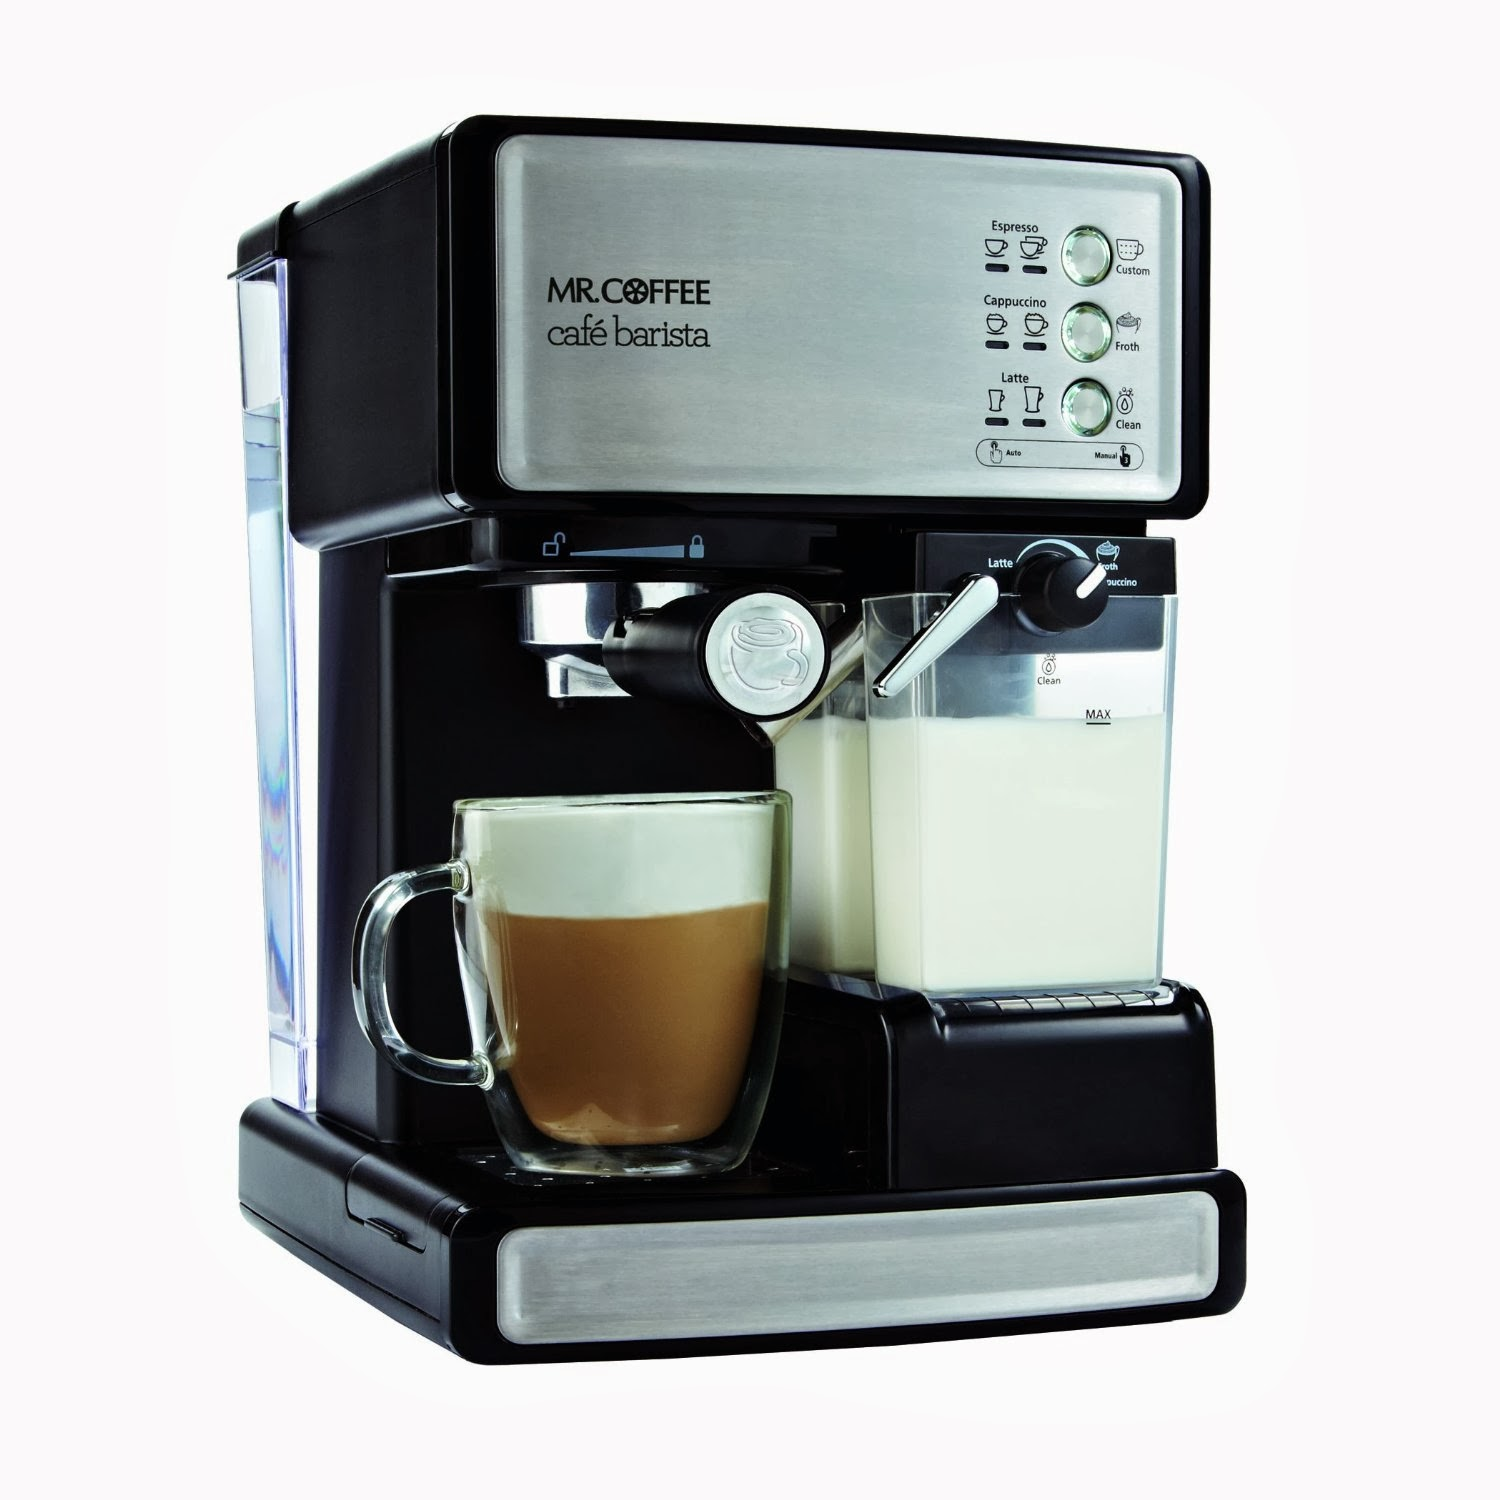 Electronic What To Look For When Buying A Coffee Machine tips for buying espresso machine gadgets men